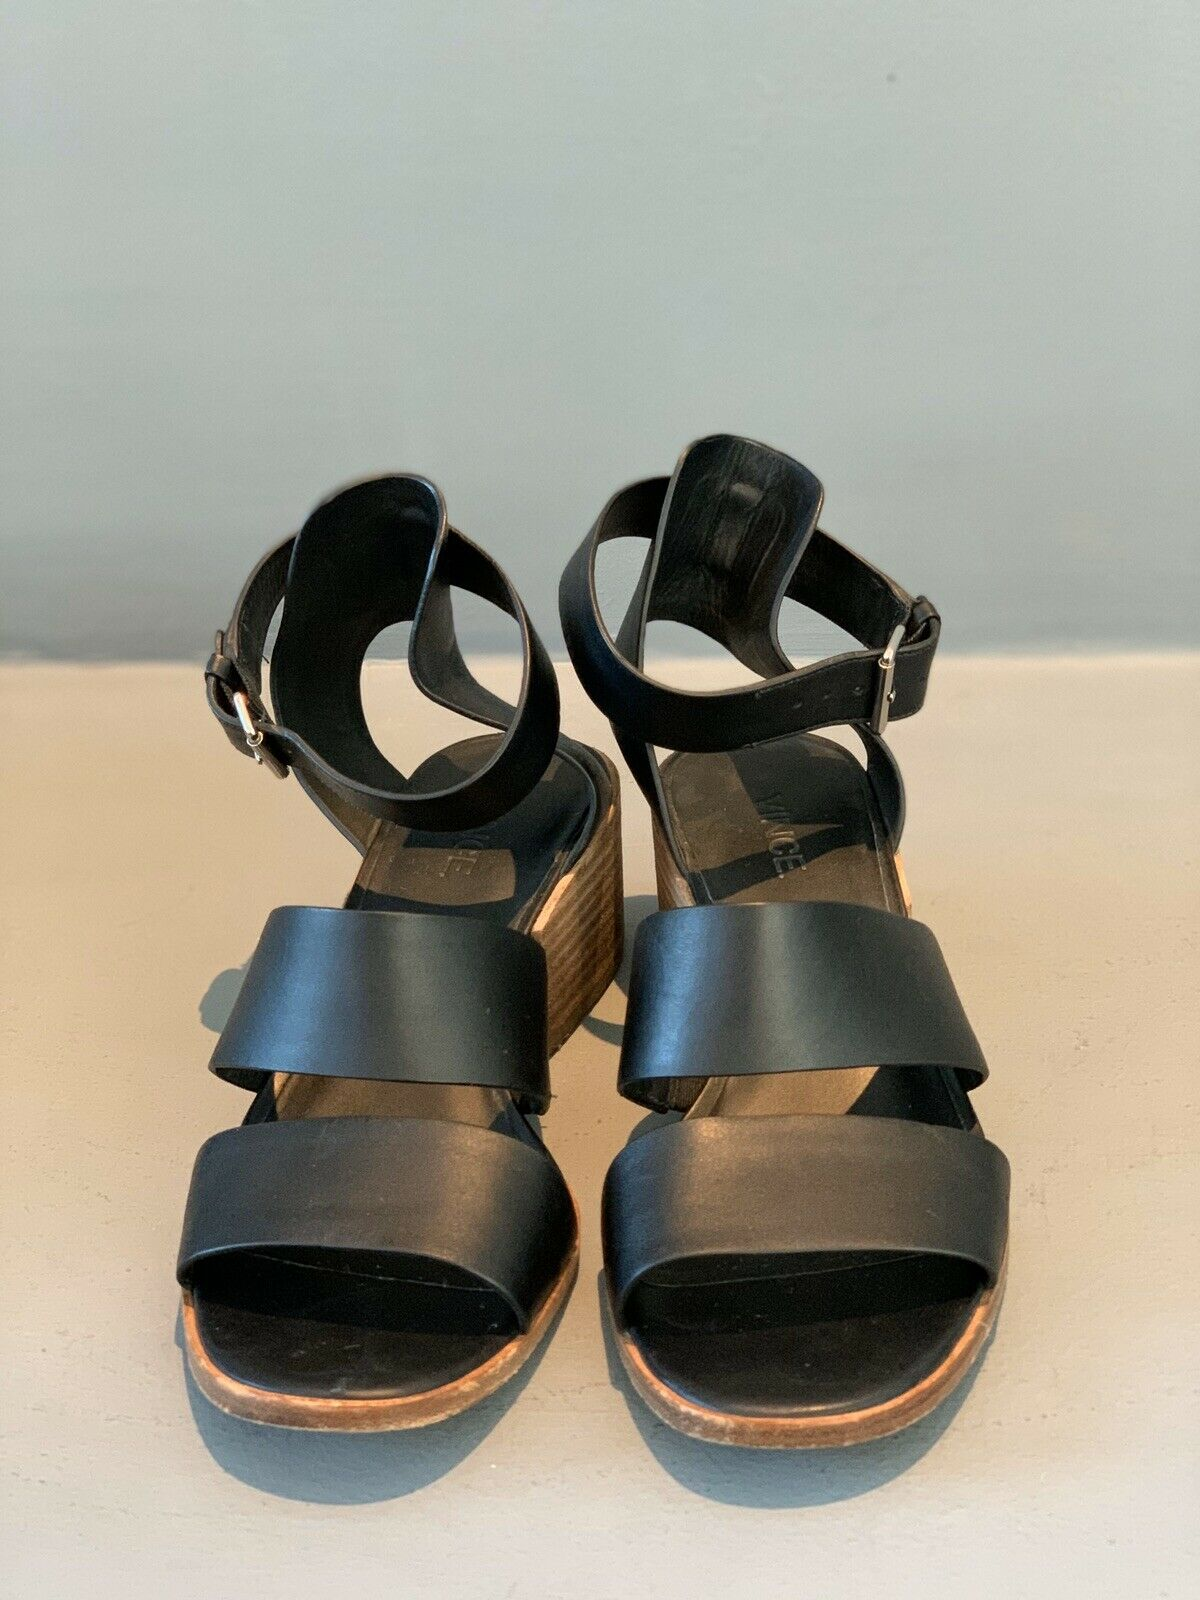 Vince Strappy Sandals - image 10